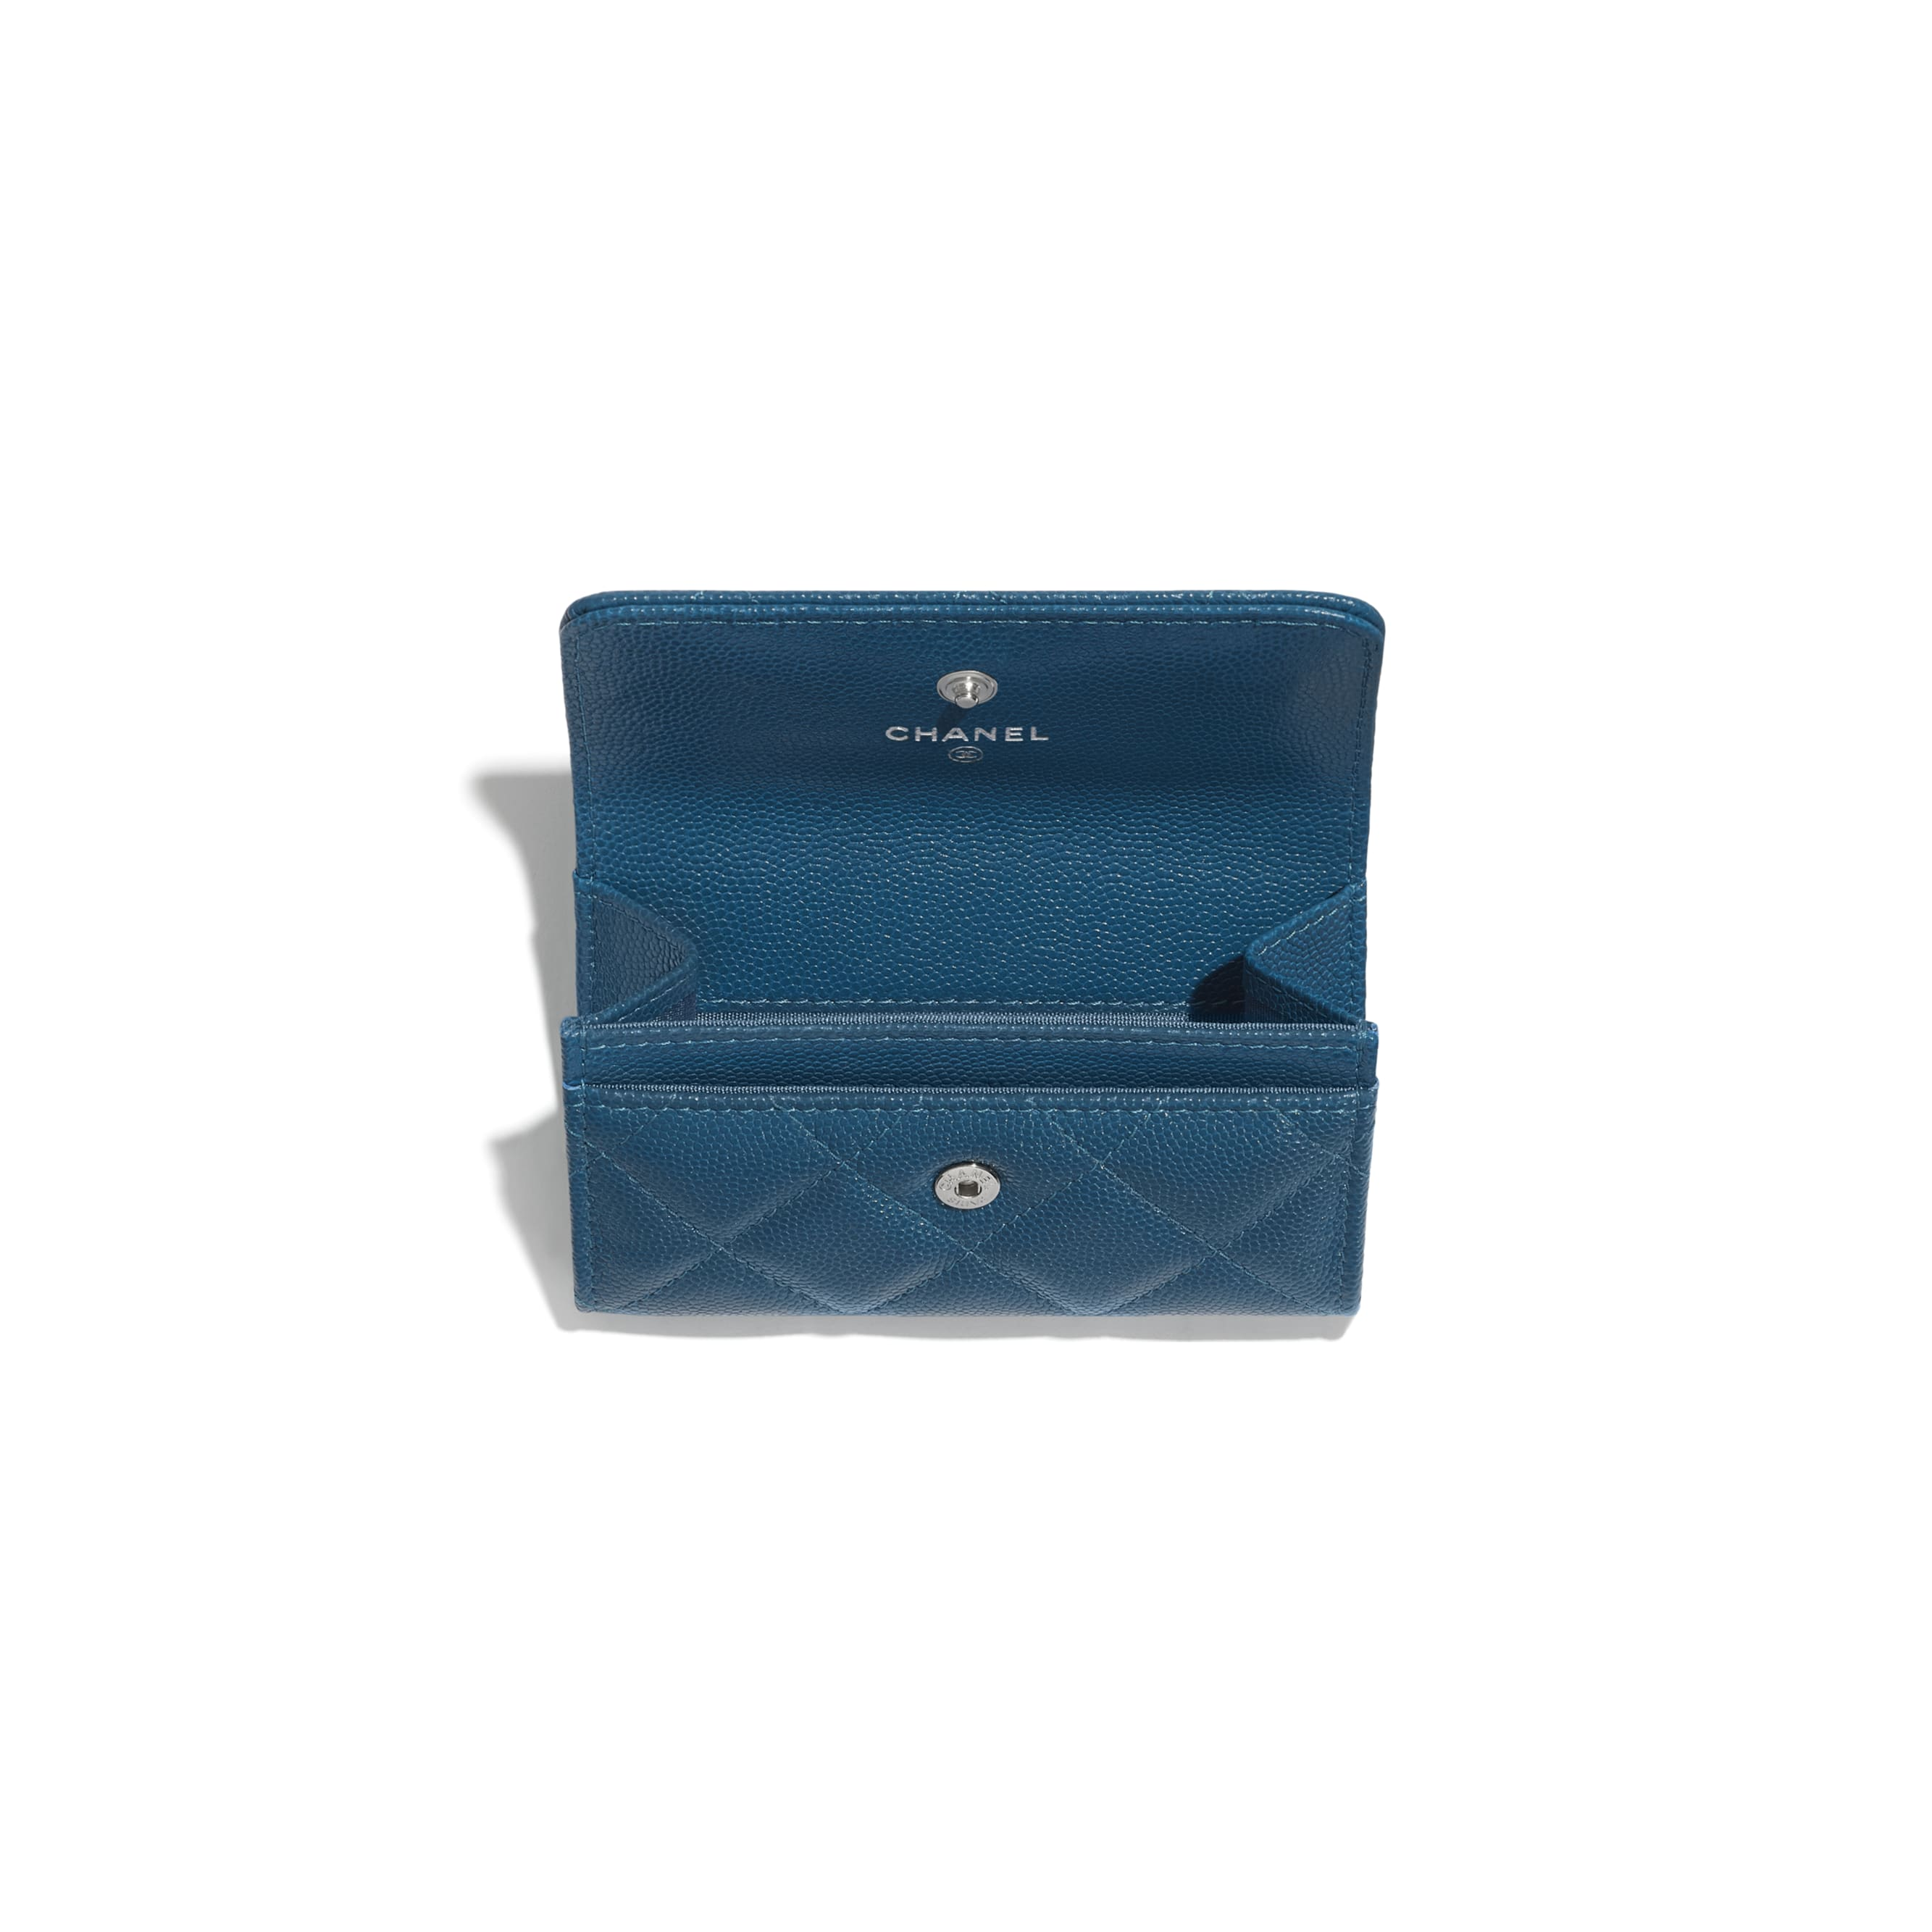 Flap Card Holder - Navy Blue - Grained Calfskin & Lacquered Metal - CHANEL - Other view - see standard sized version